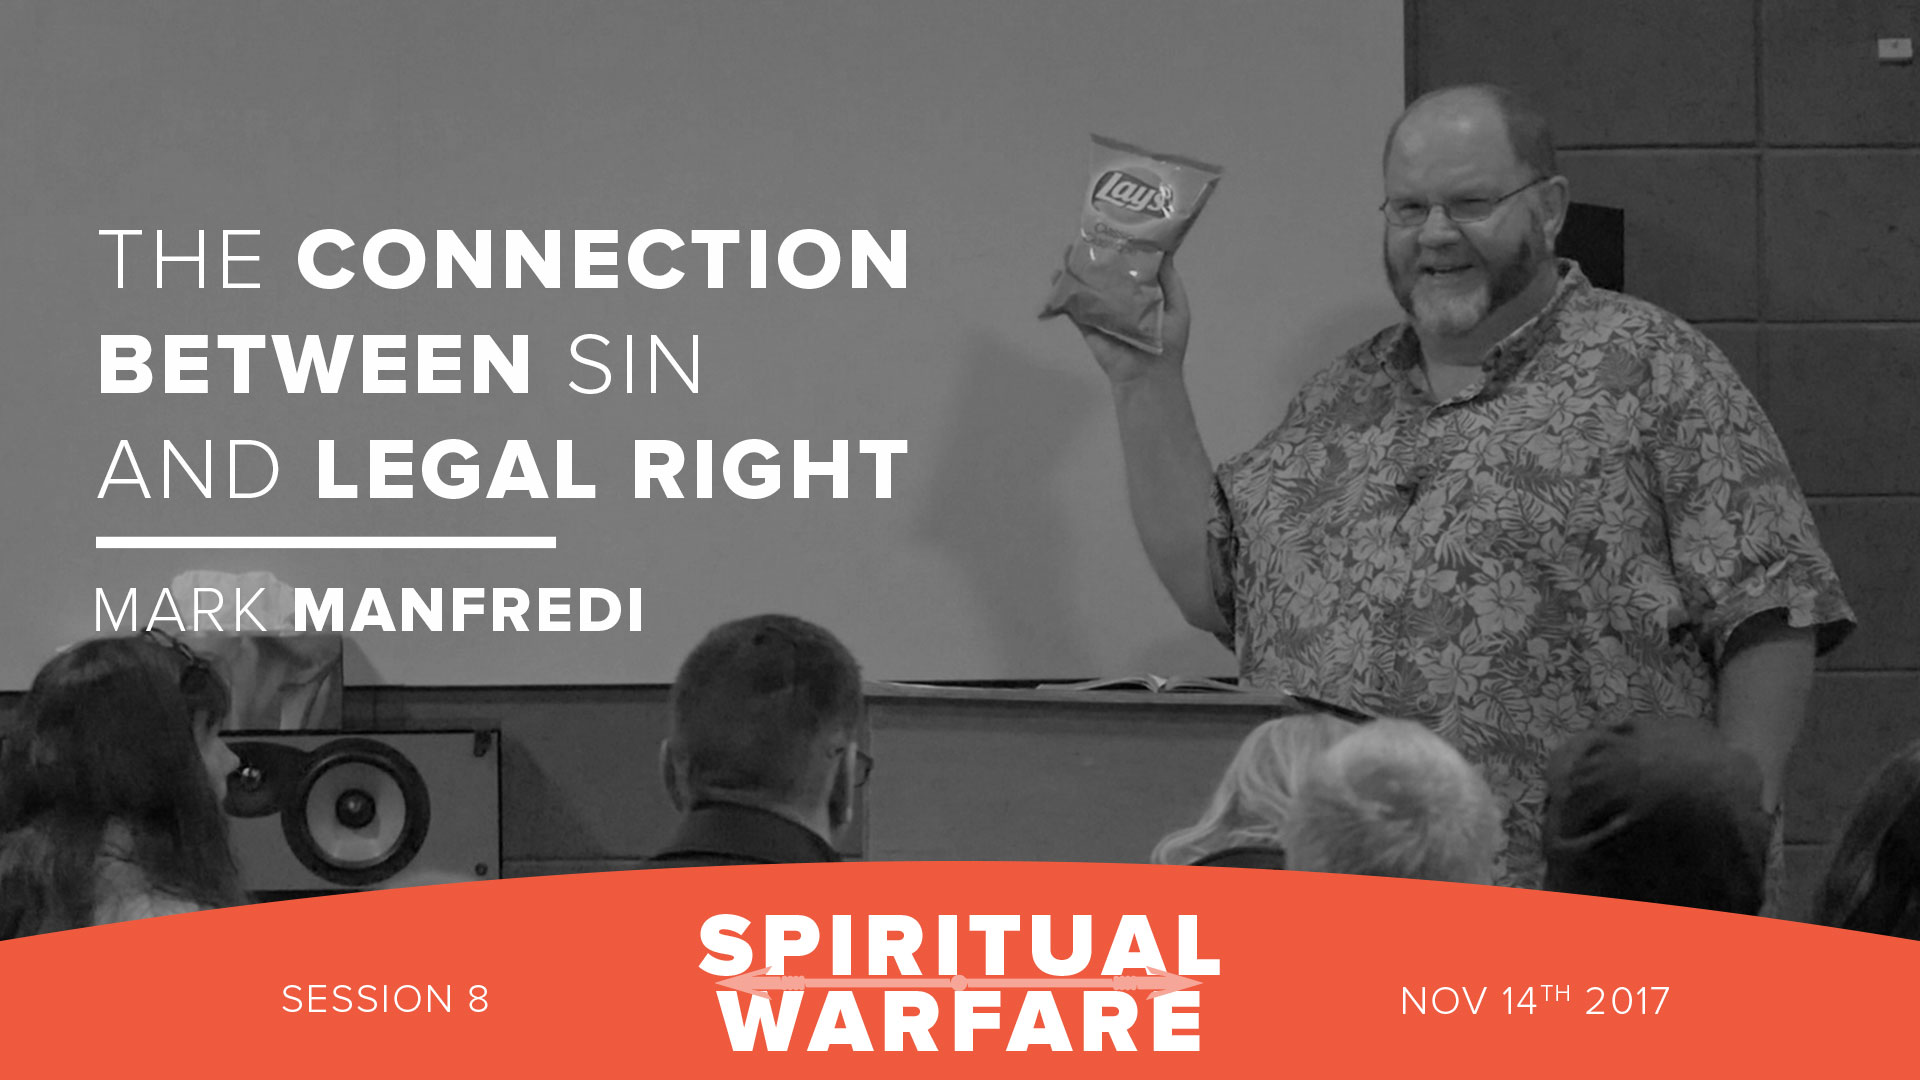 The connection between sin and legal right